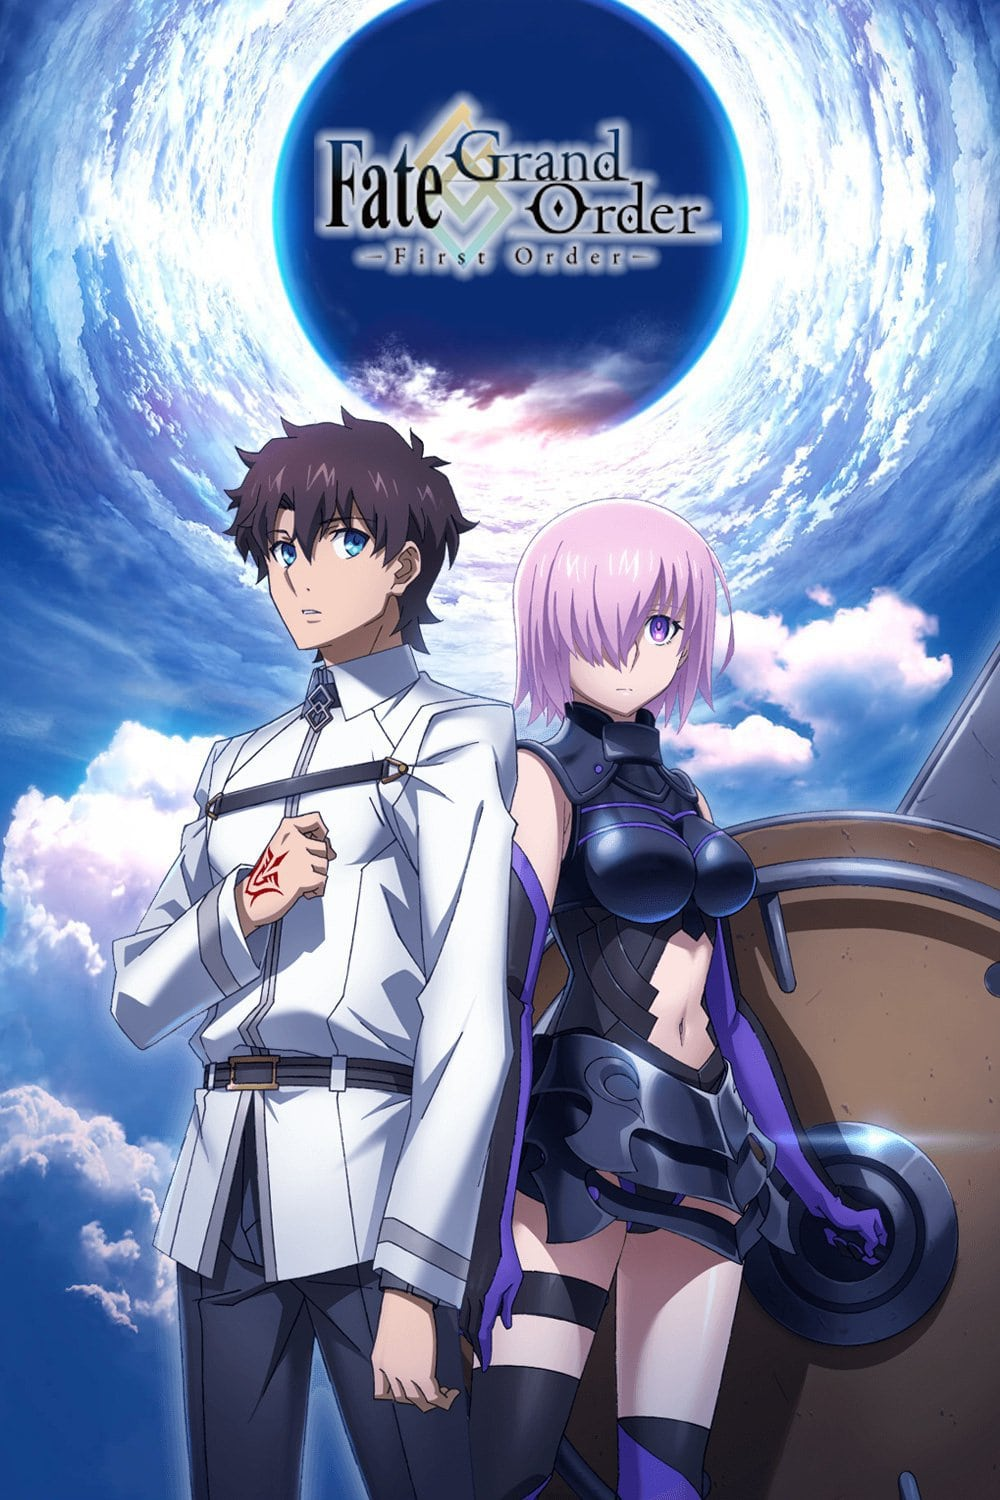 Fate grand Order new visual